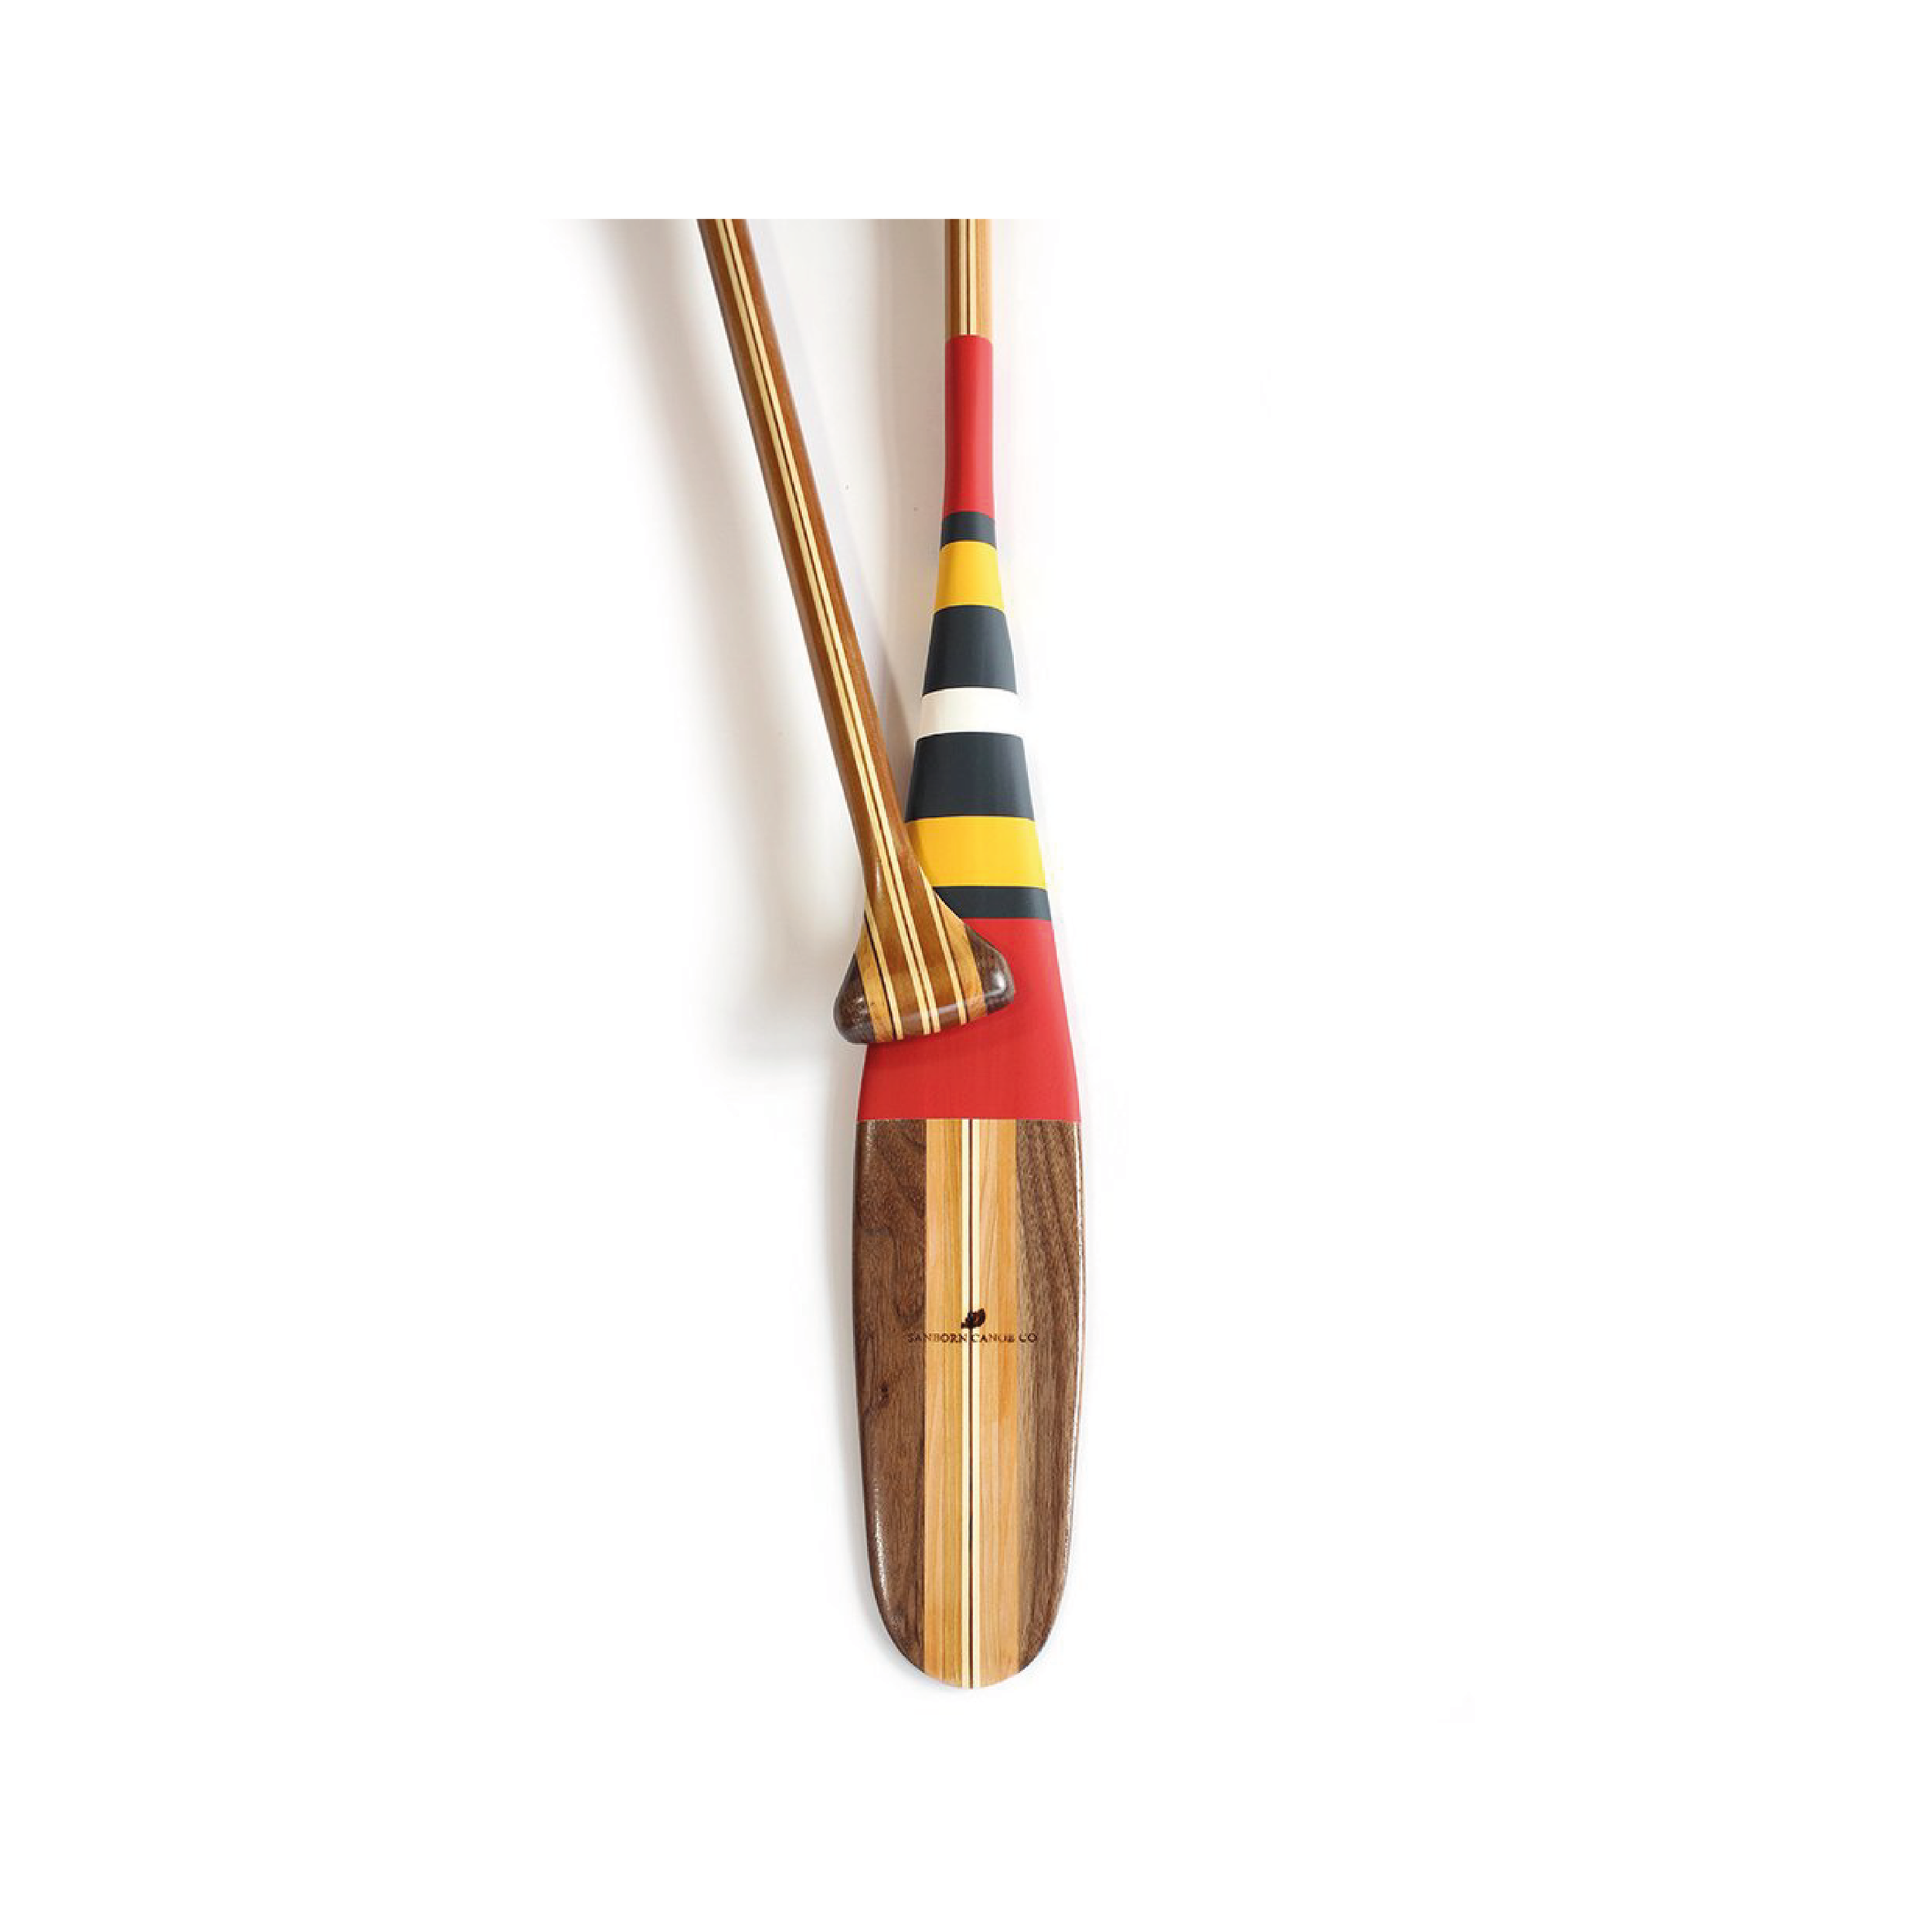 MUFFERAW   By   Sanborn Canoe Co.     An artisan paddle so-named from Big Joe Mufferaw.    SHOP NOW      £145